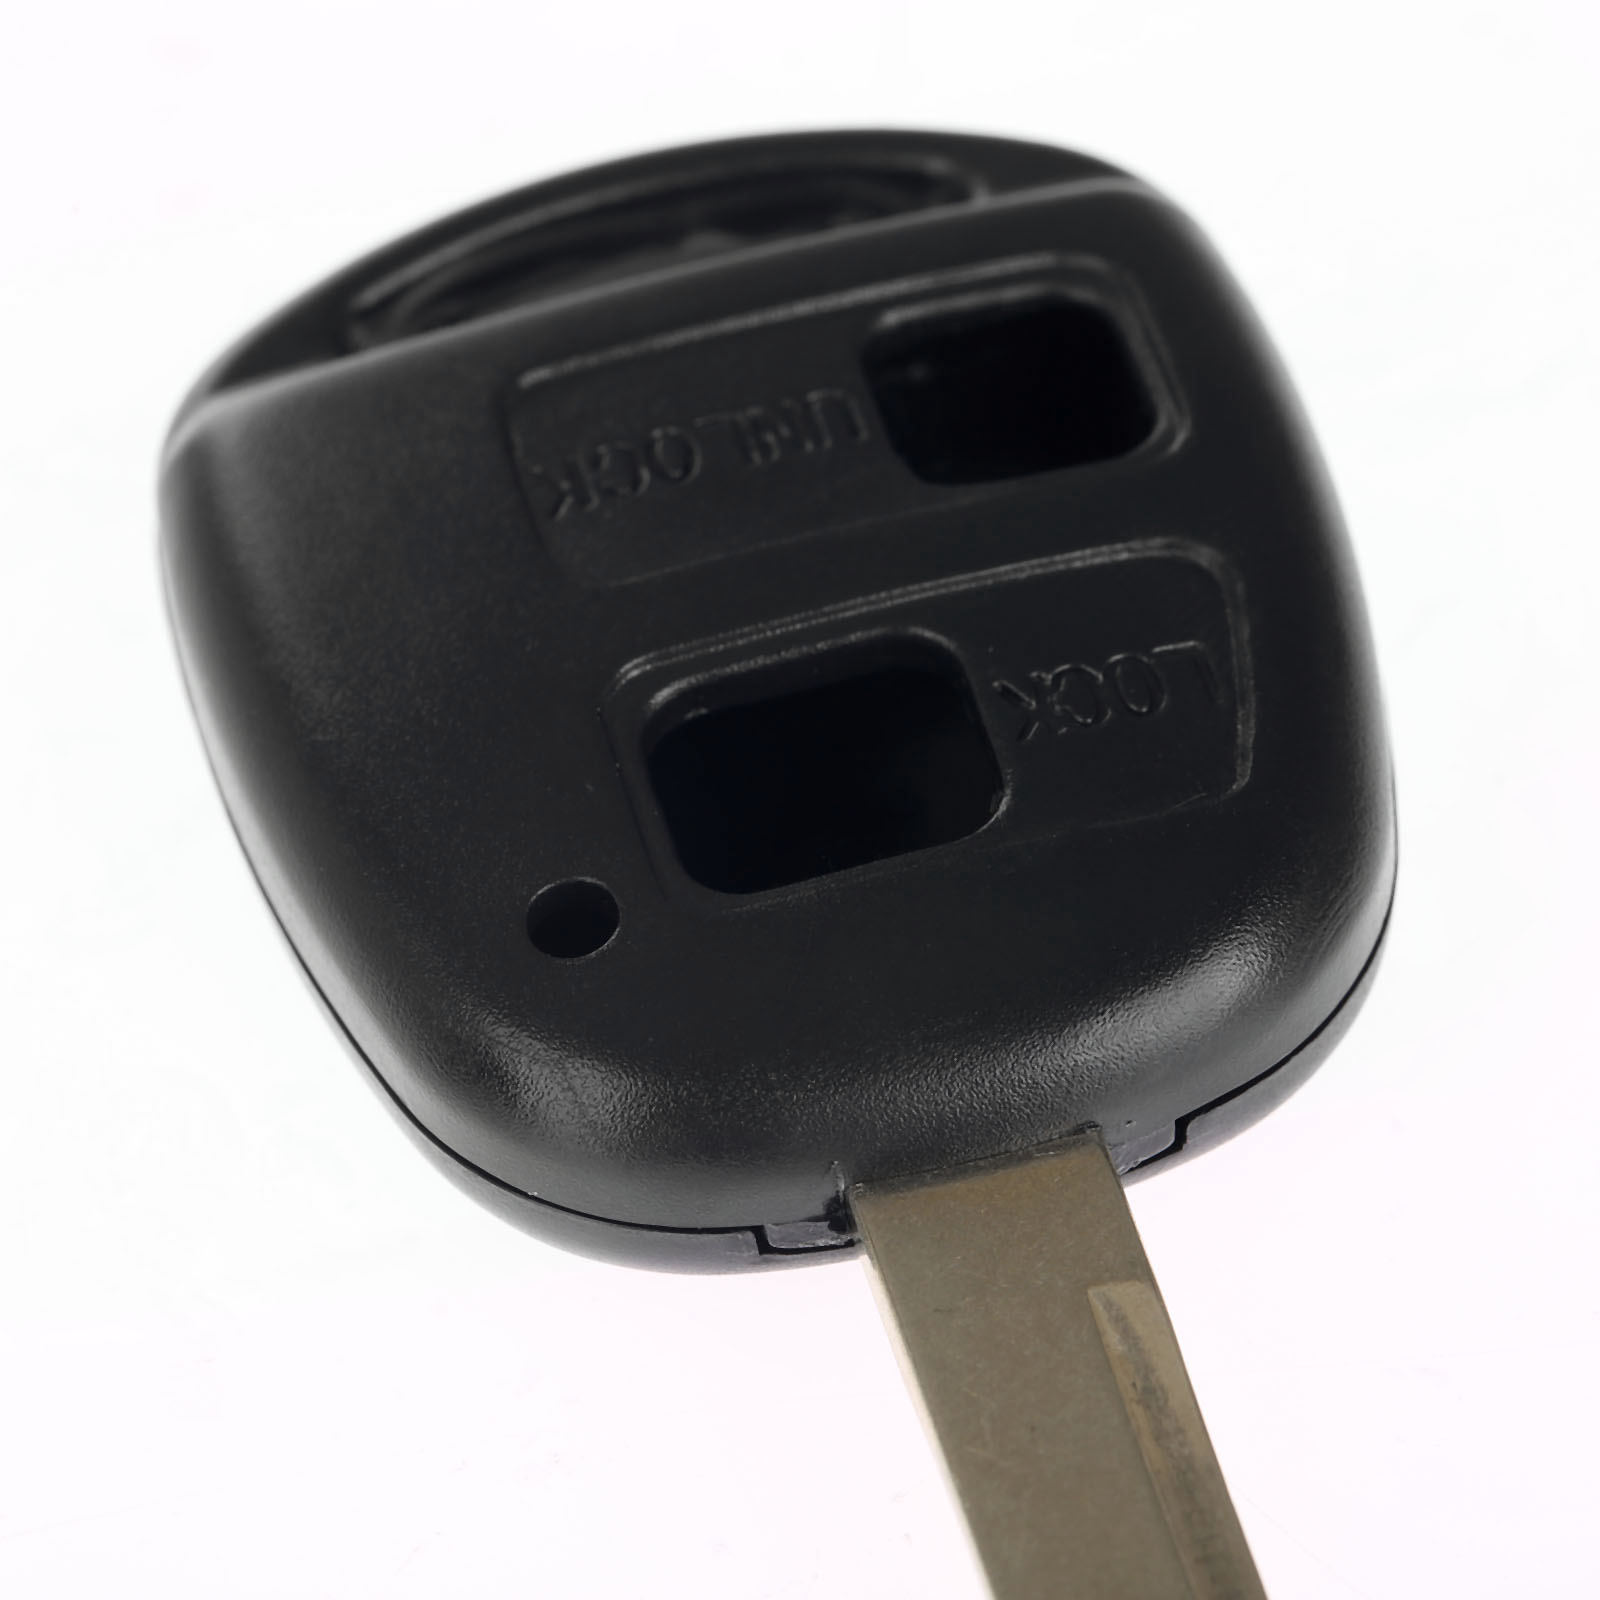 Image 4 - 2 Buttons Car Key Shell Fob For Land Rover Discovery 1999 2004 Uncut Blade Auto Replacement Keyless Case Cover-in Car Key from Automobiles & Motorcycles